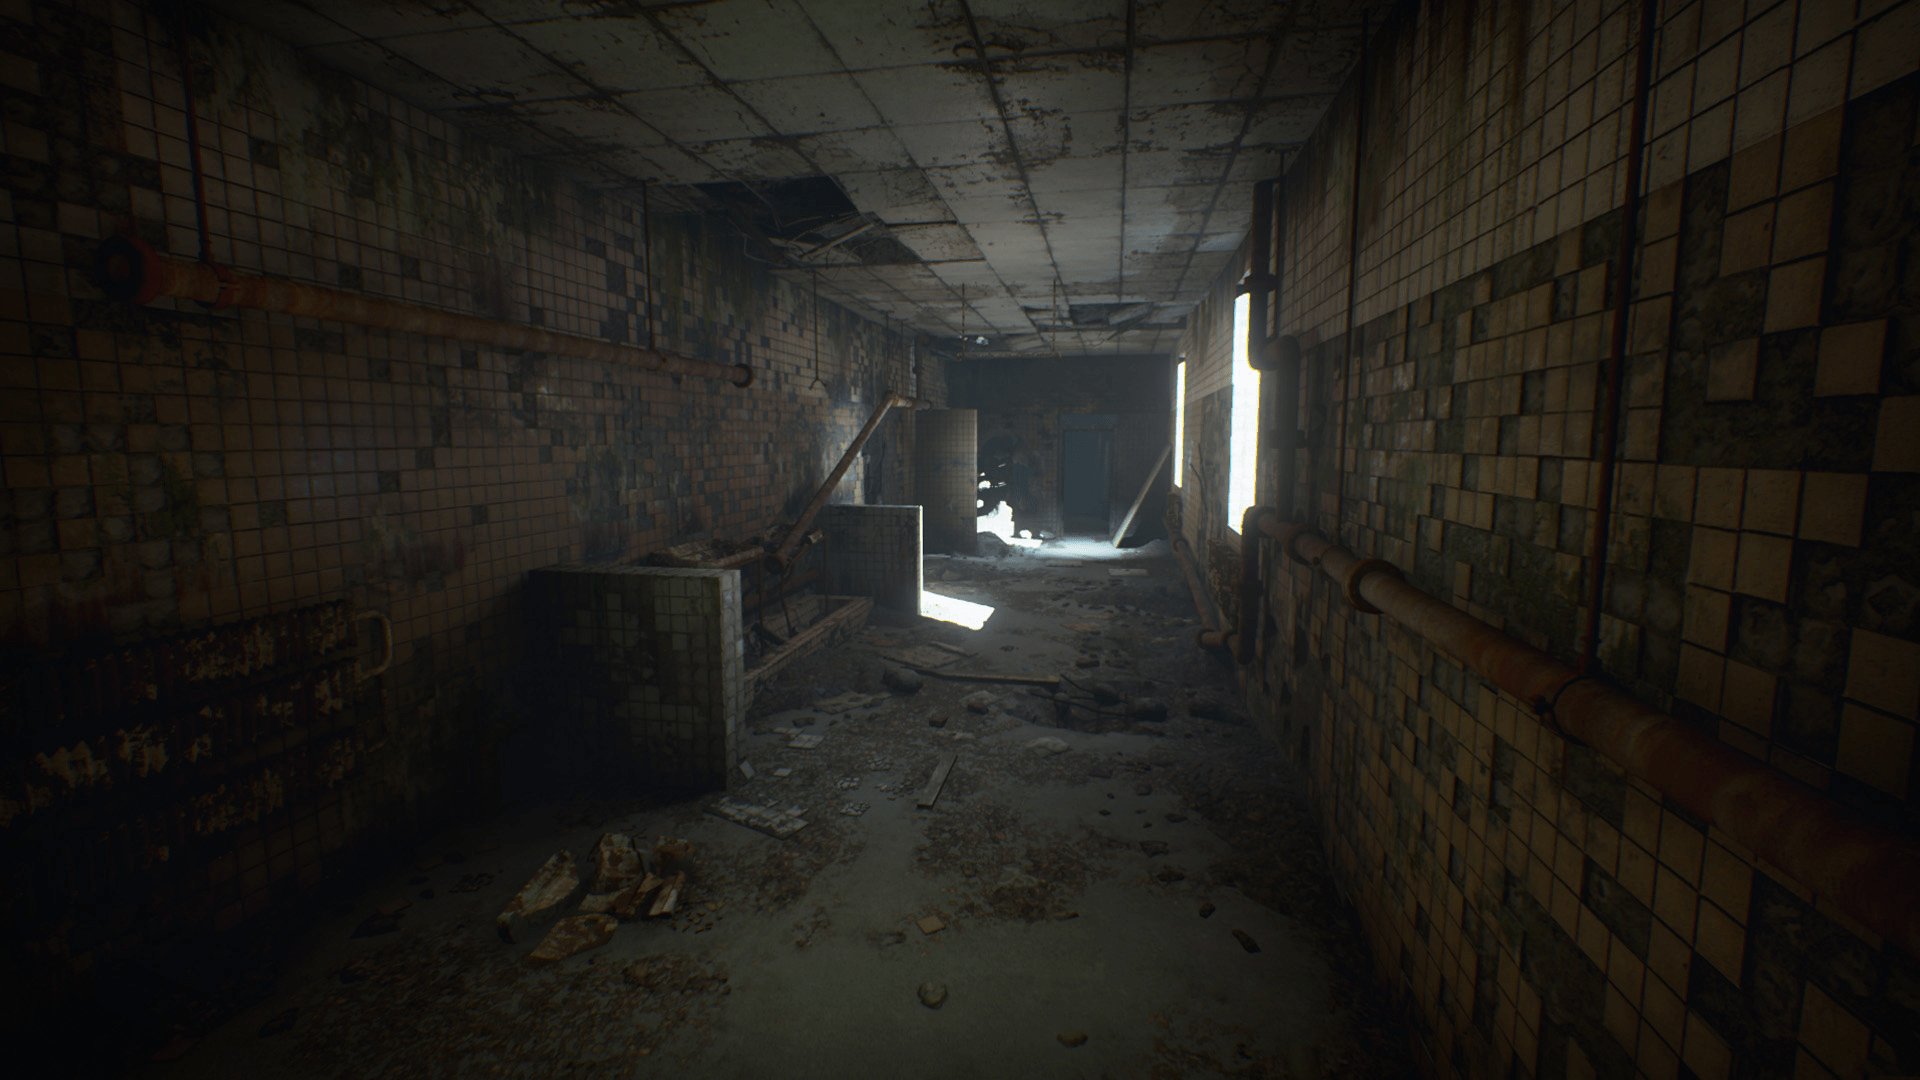 Download Car Wallpaper Pack For Pc Abandoned Place By Alexander Shitikov In Environments